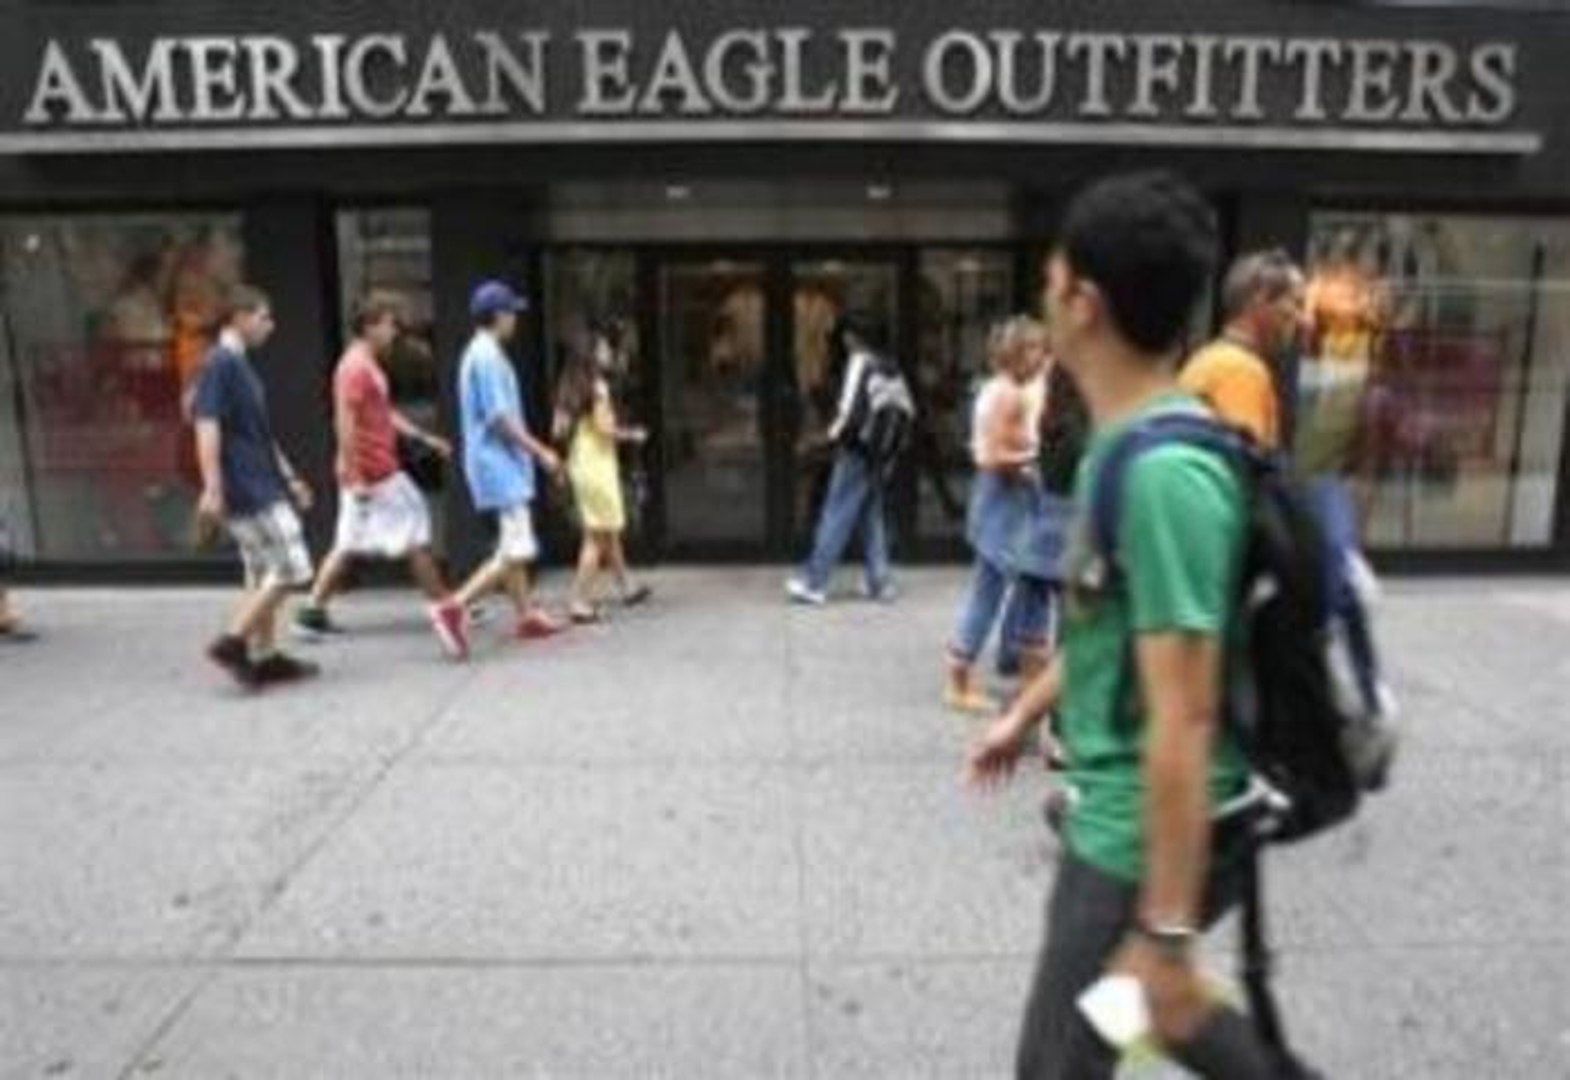 Earnings Trouble: American Eagle Outfitters (AEO), Abercrombie & Fitch (ANF), Aeropostale Inc (A